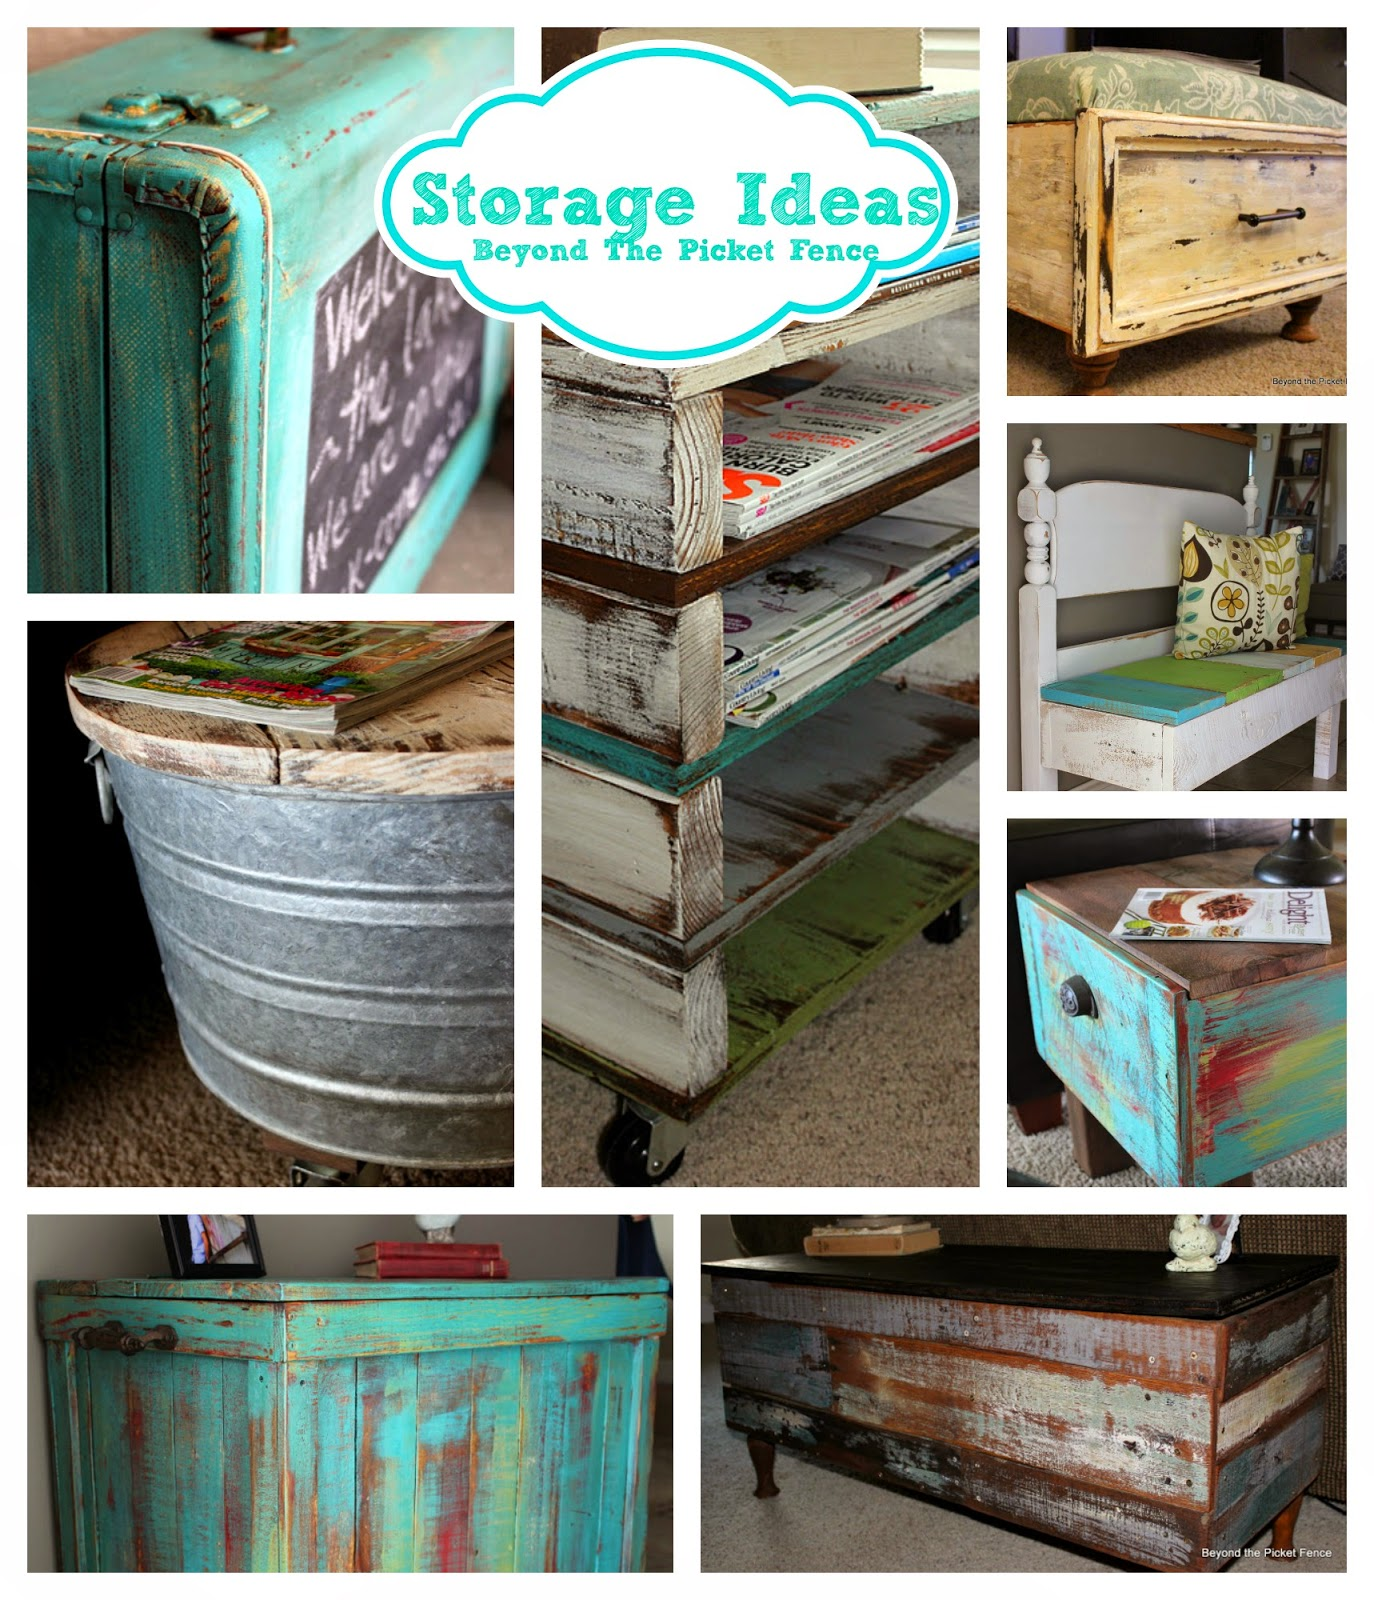 Storage Solutions, http://bec4-beyondthepicketfence.blogspot.com/2015/04/storage-solutions.html